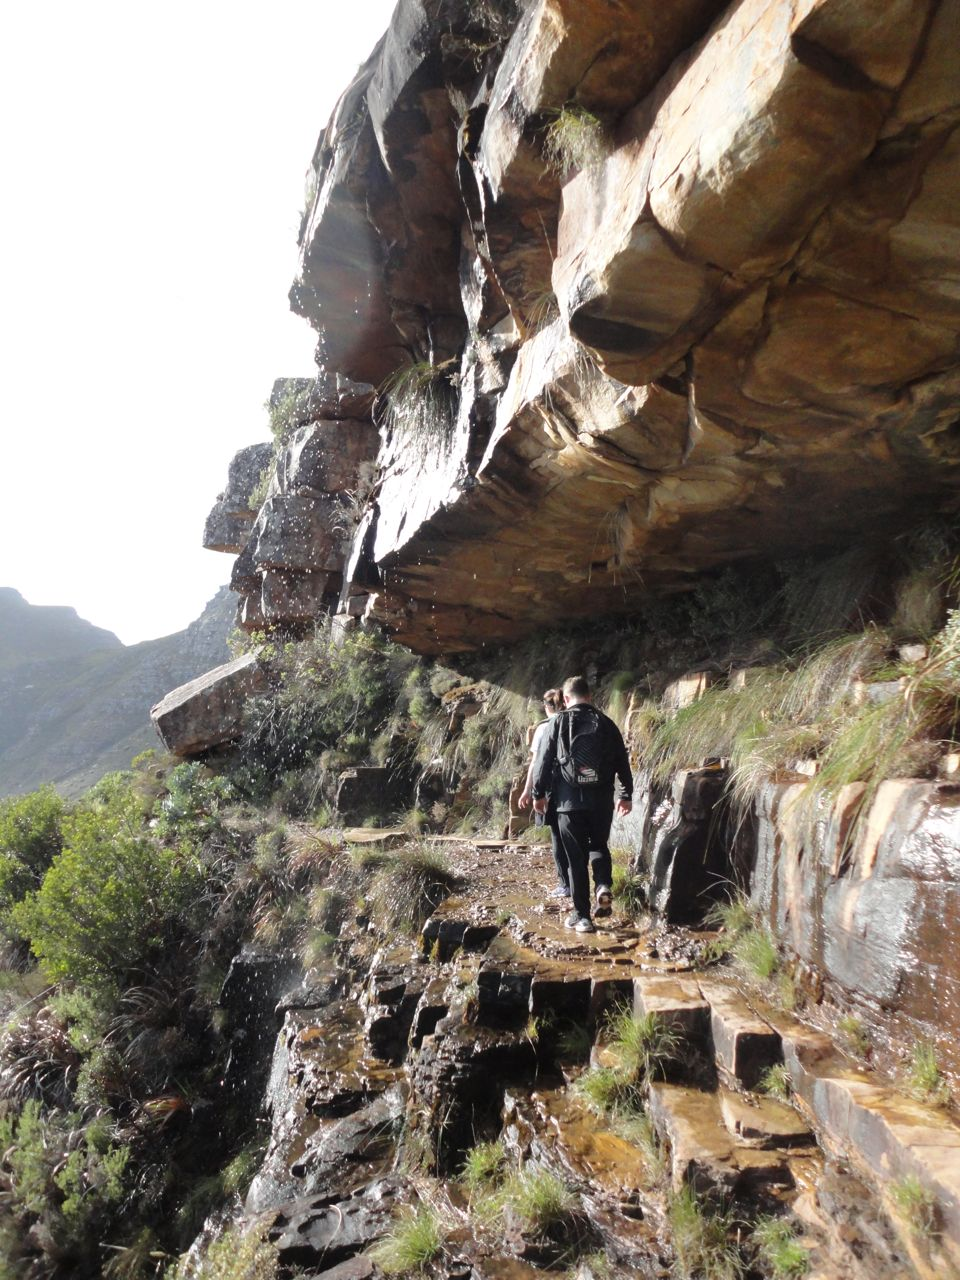 Platteklip Gorge Mother City Hikers Plasttekpp April 9 2013 Mike And Moira Were Here From Ireland While Cape Town Was Experiencing Some Rainy Weather I Always Feel Bad When People Come England Or